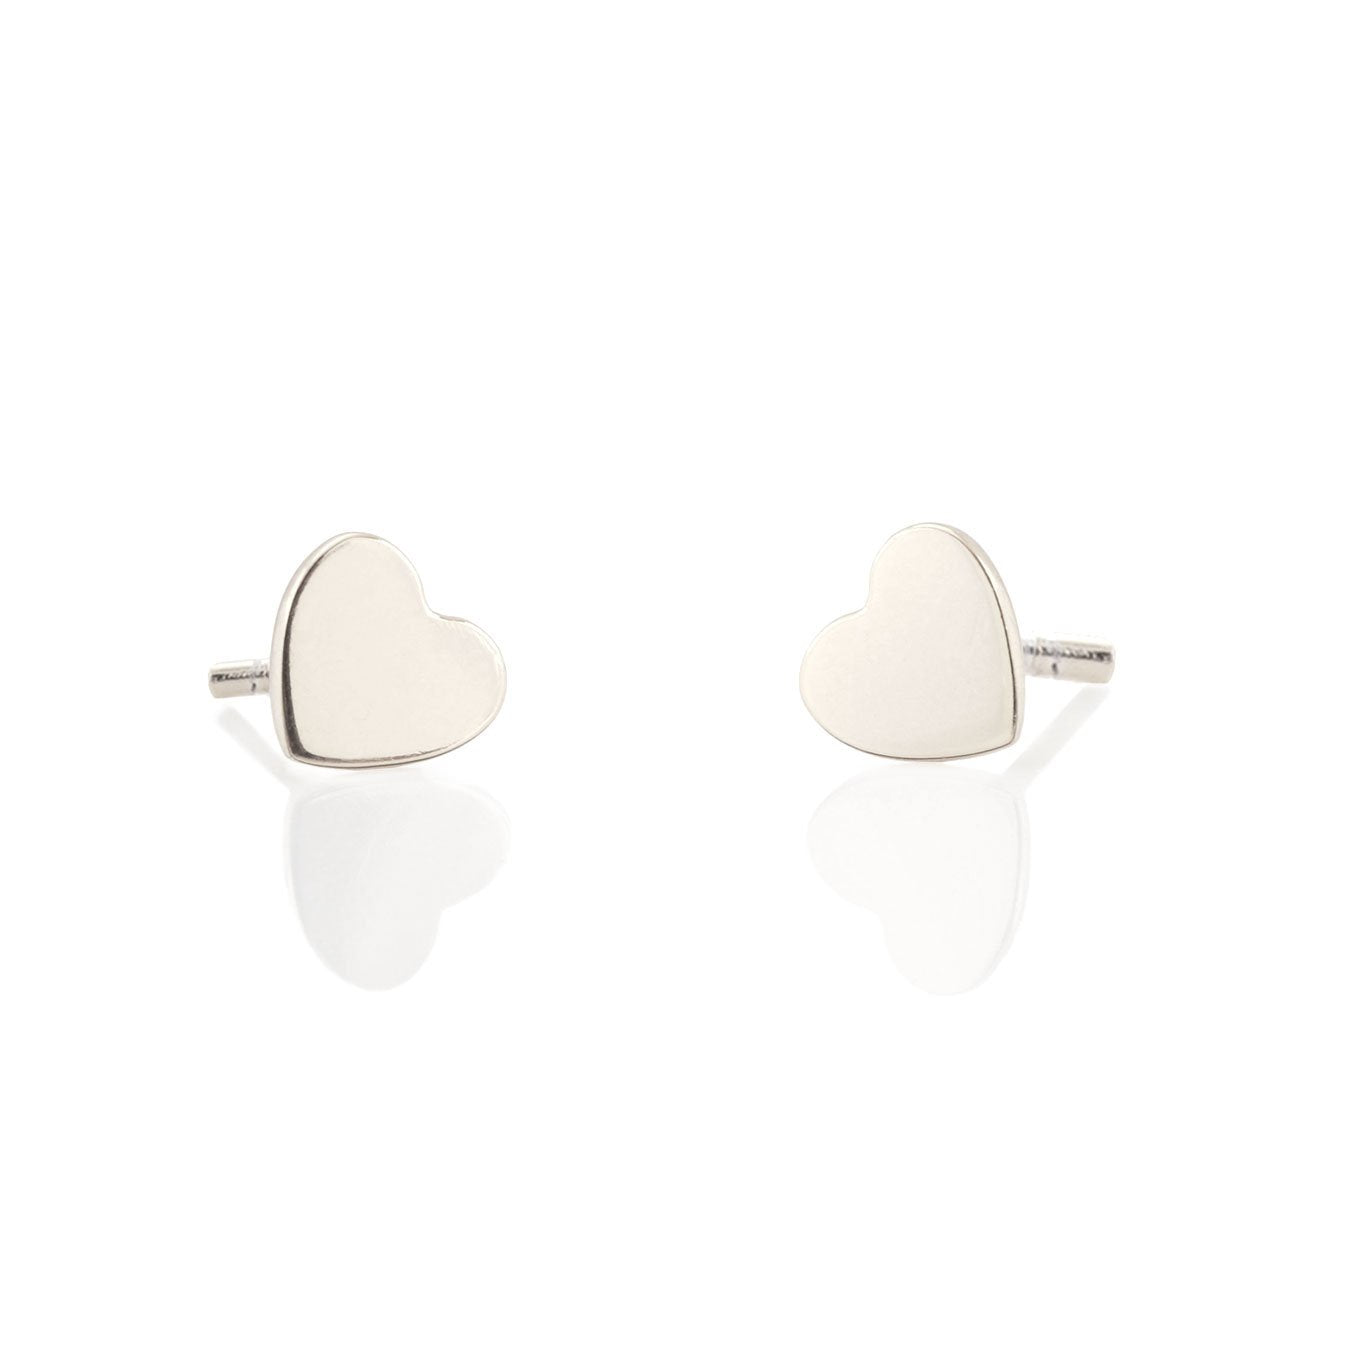 KRIS NATIONS - HEART STUD EARRINGS IN SILVER